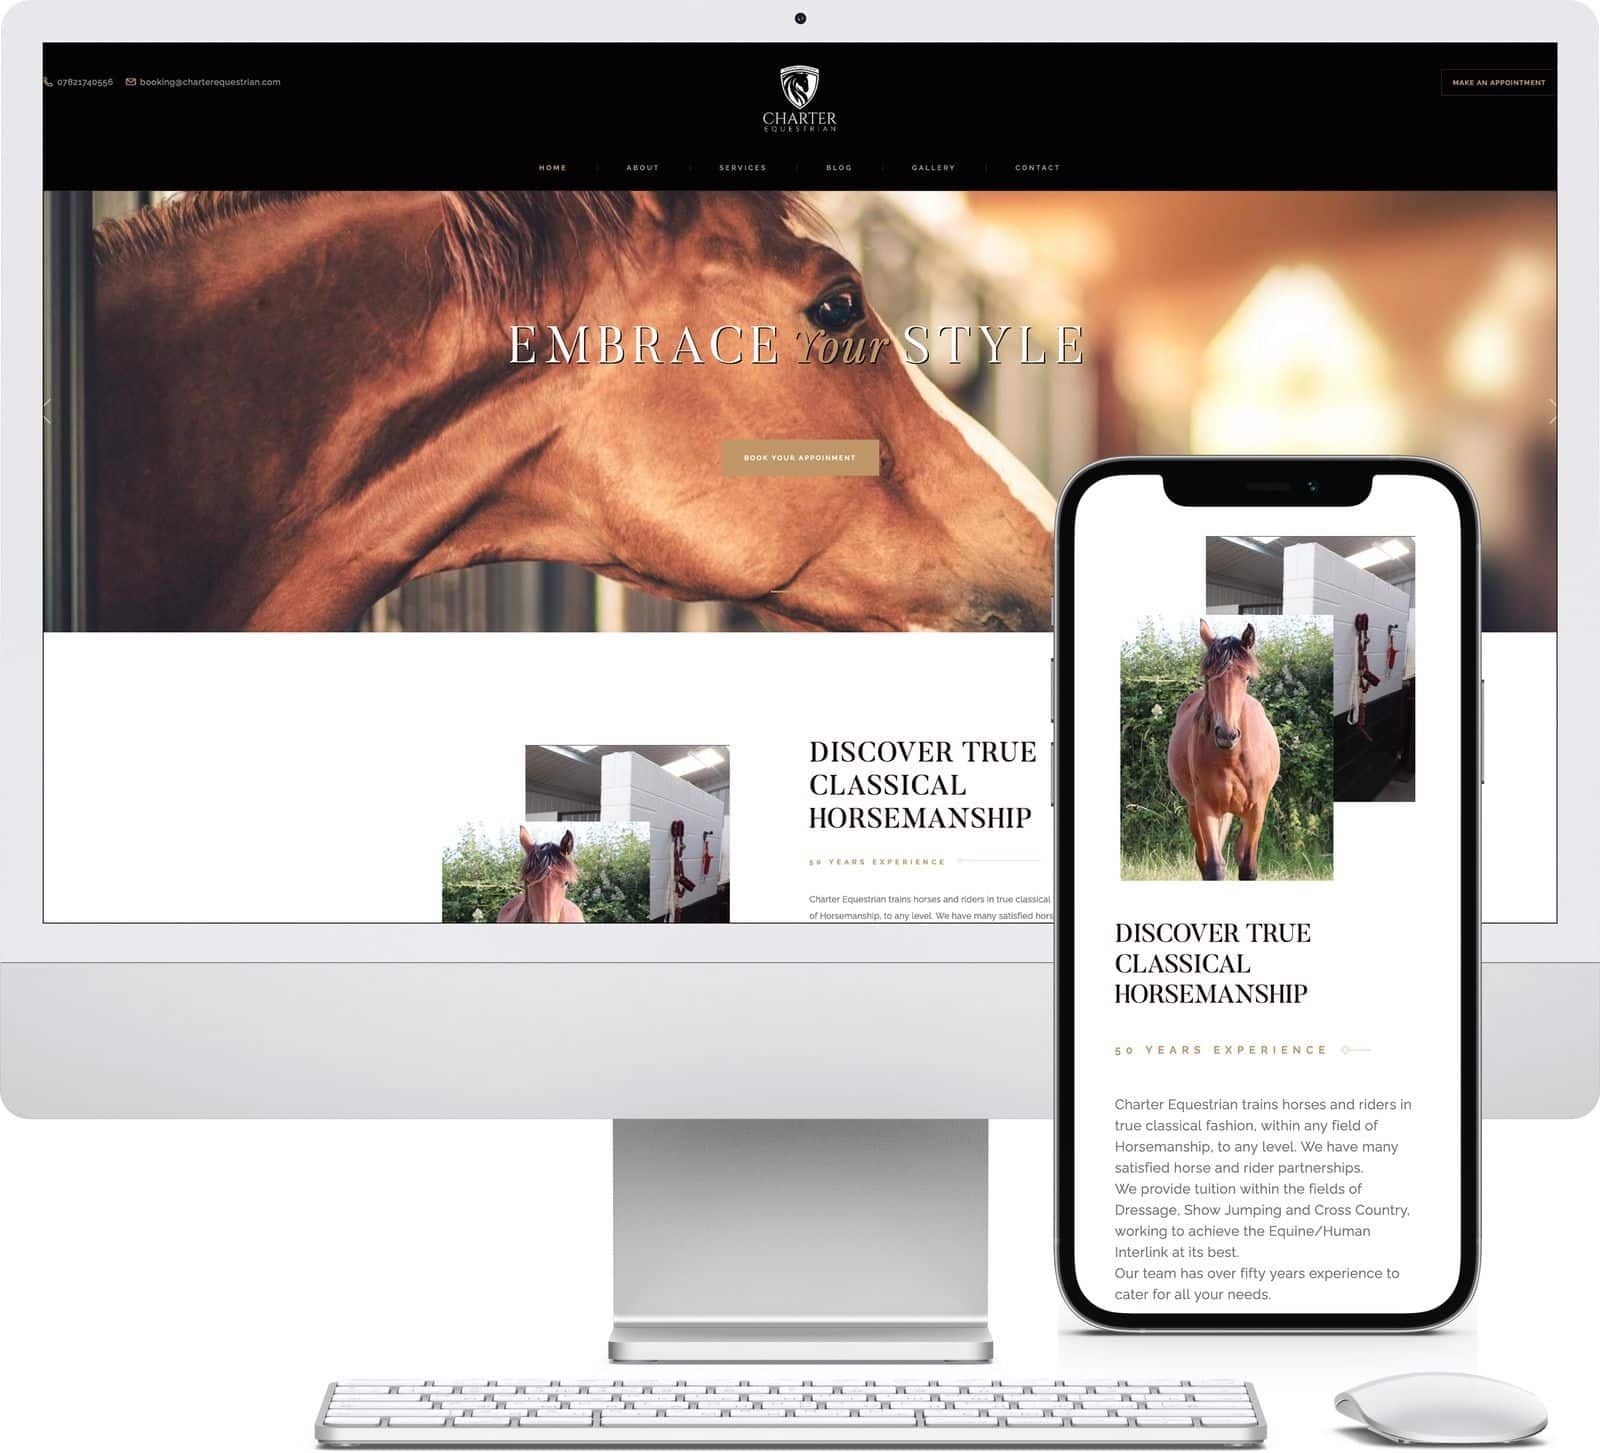 Charter Equestrian iMac and iPhone mockup image - Riotspace Creative